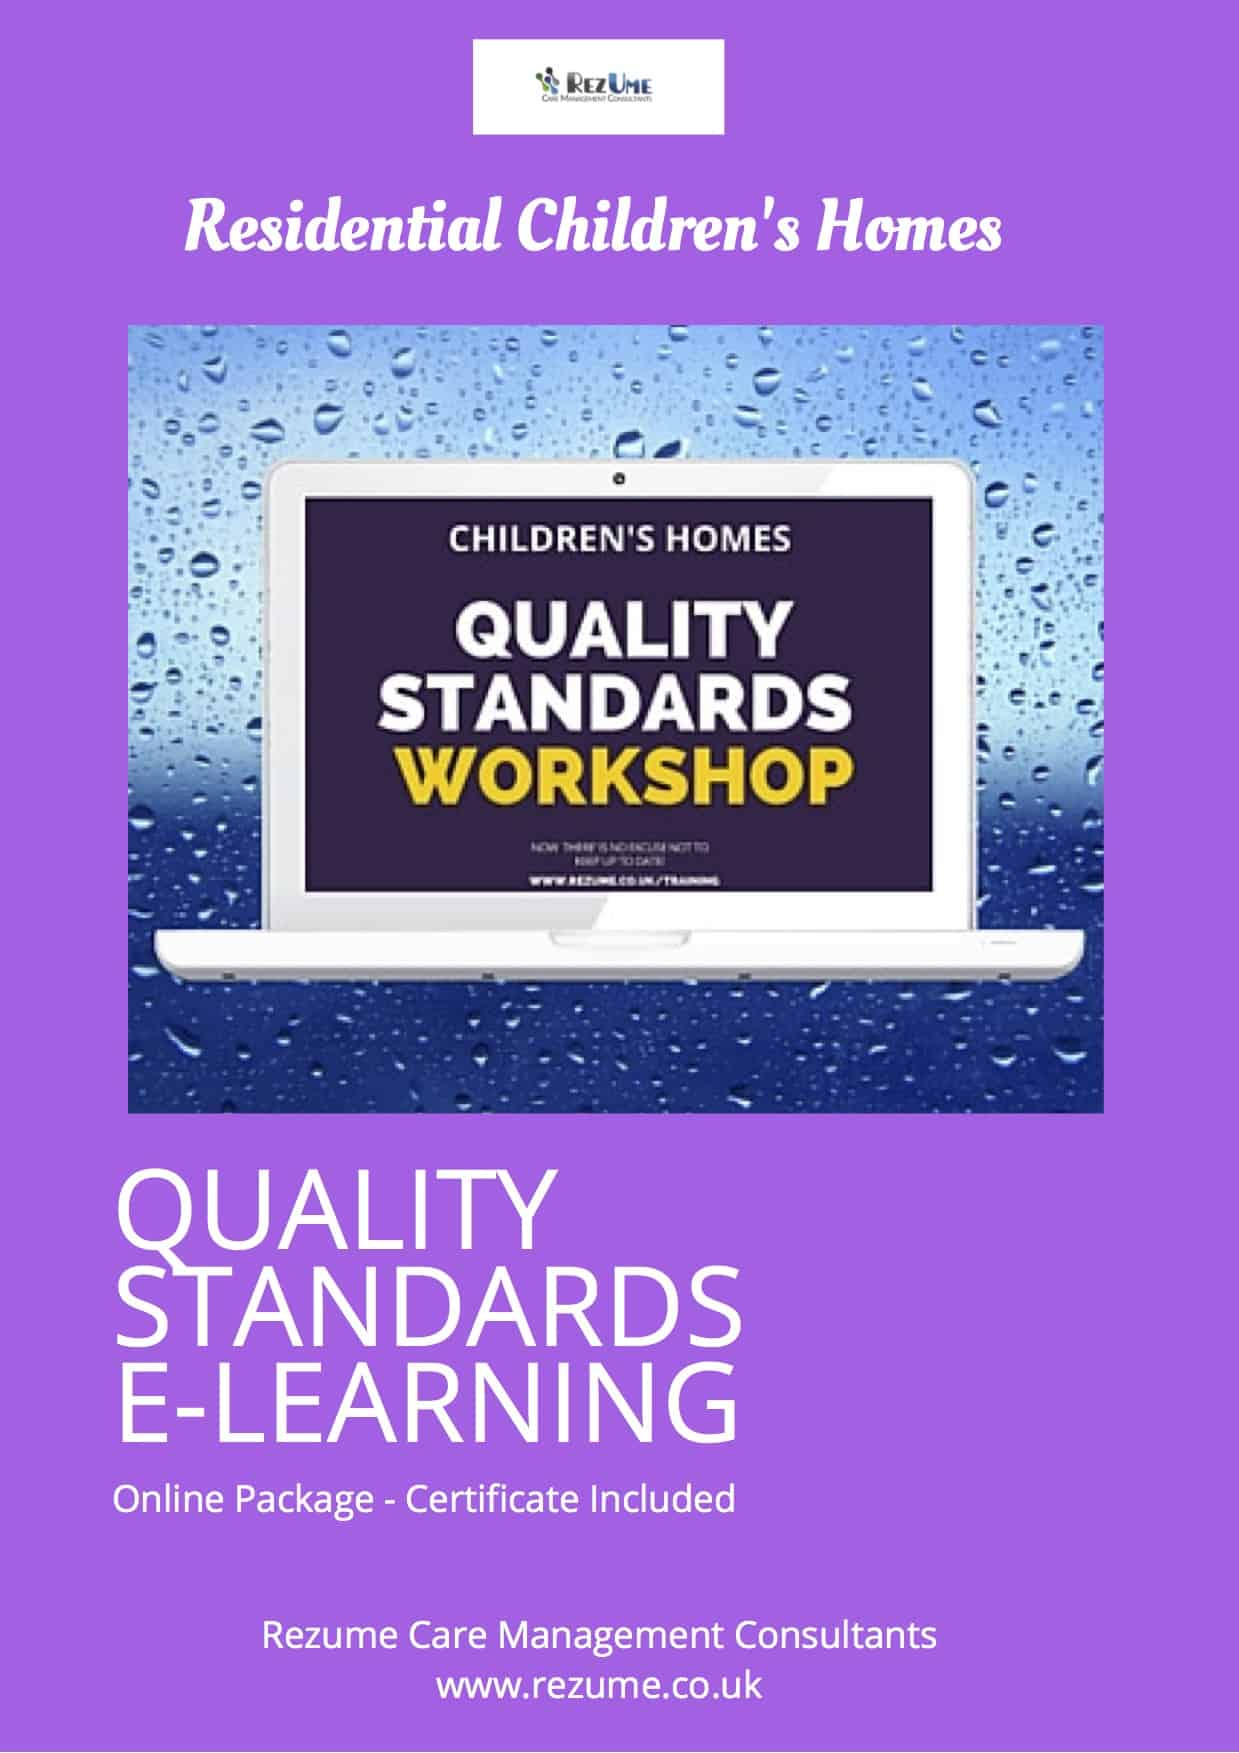 Children's Homes Quality Standards E-Learning